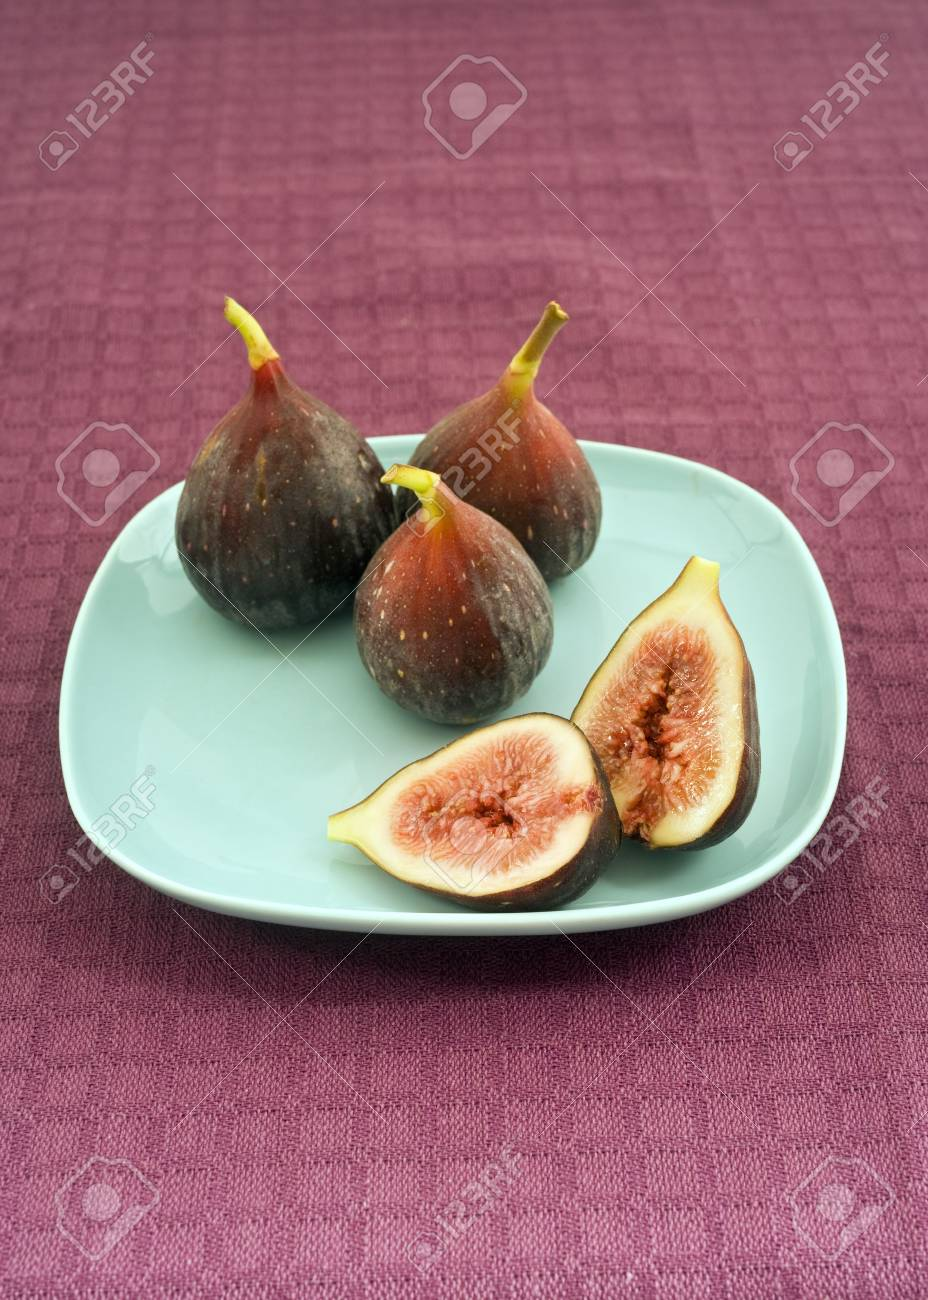 still life three whole figs and one sliced on blue plate Stock Photo - 3593726